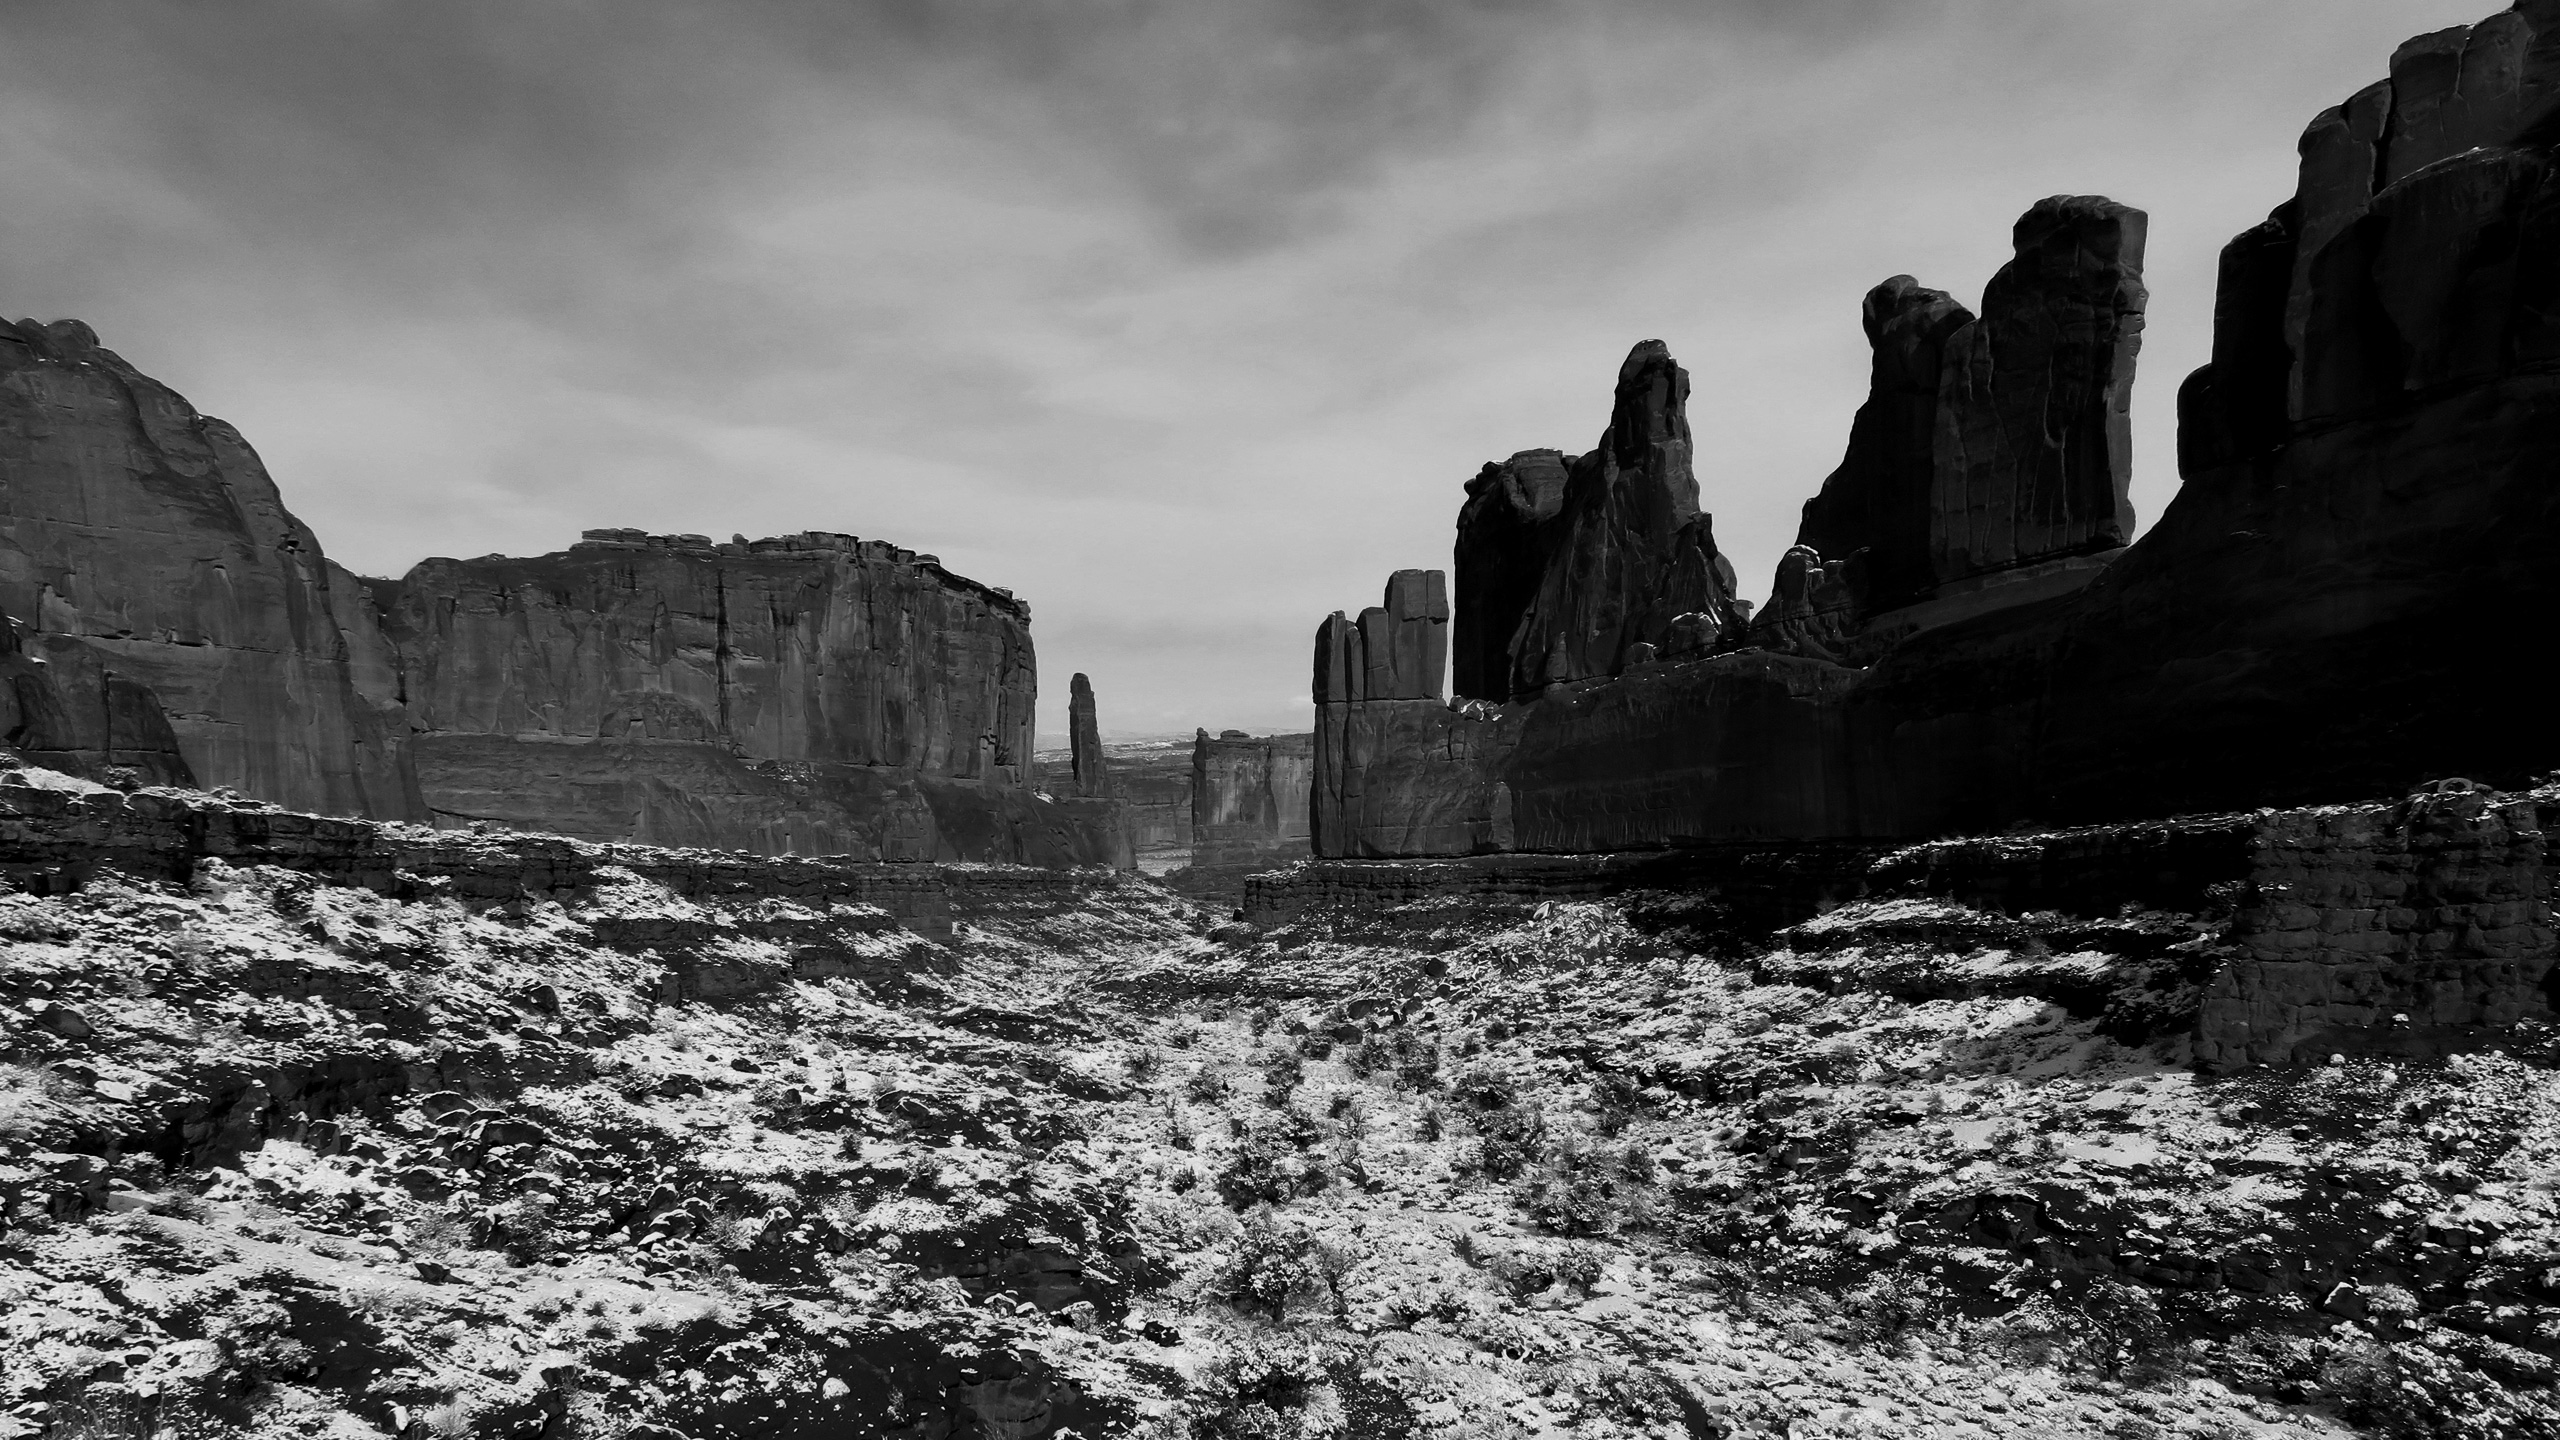 Arches-National-Park-Park-Avenue